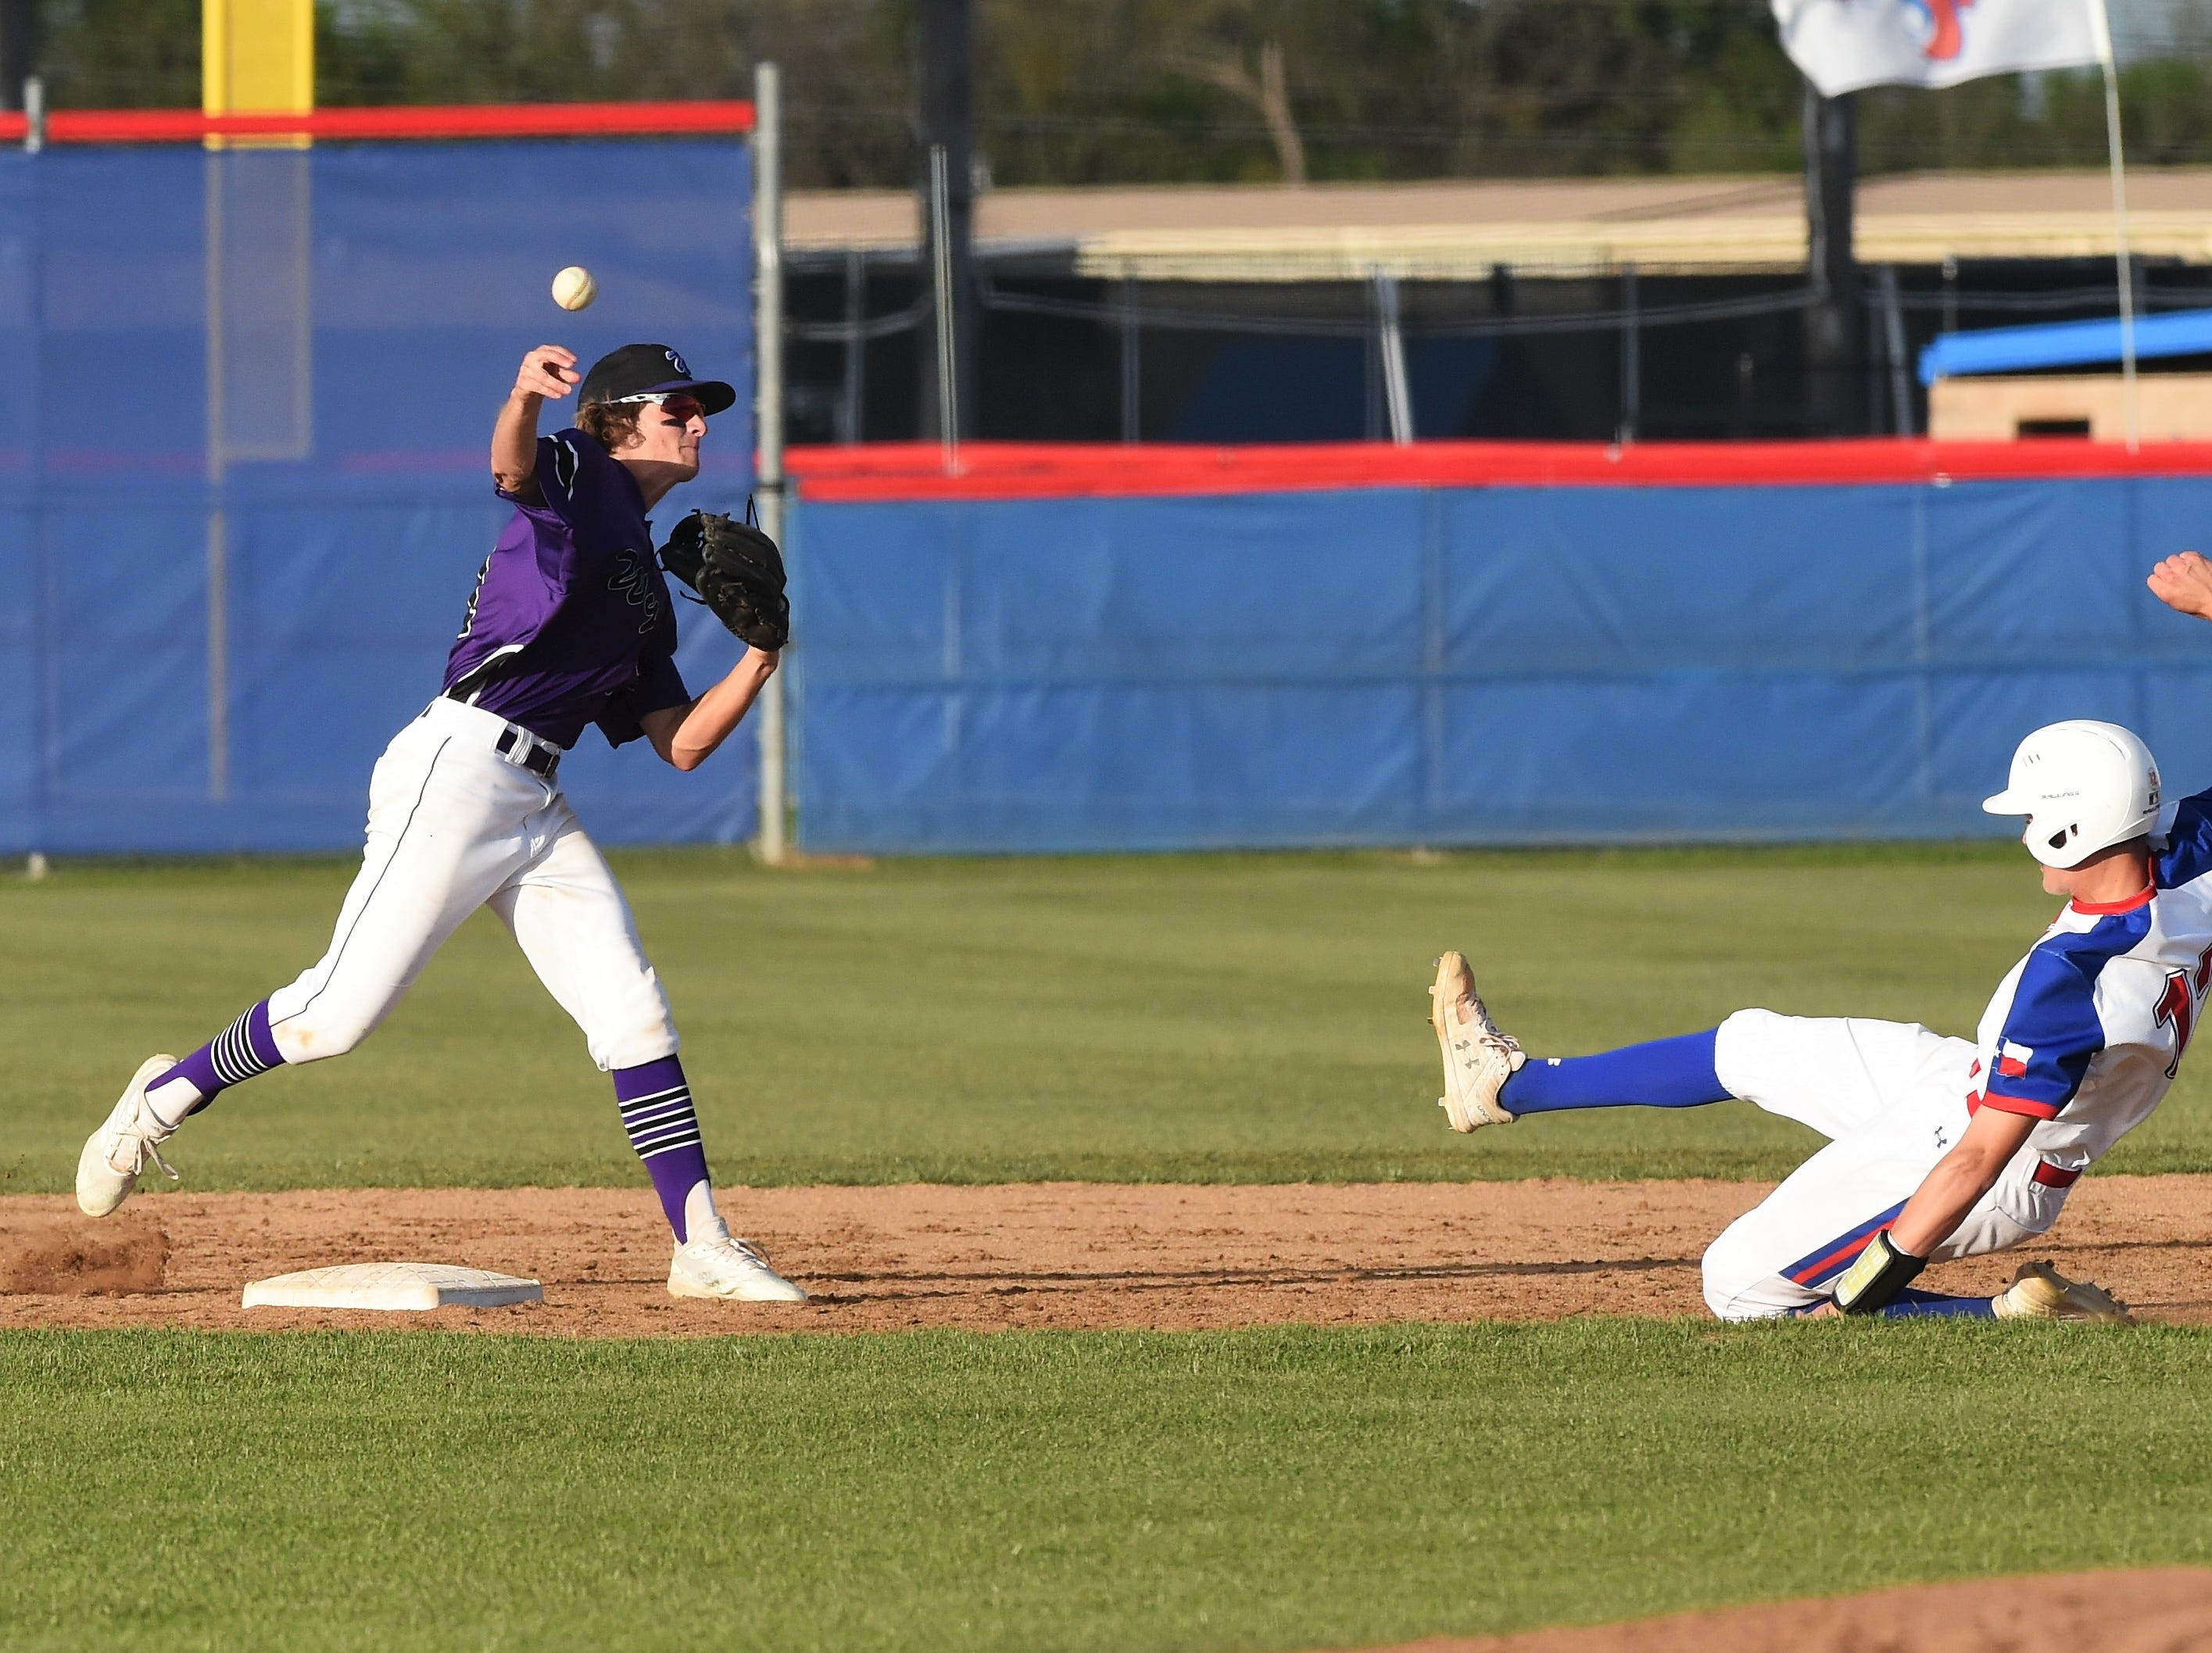 Wylie second baseman Tyler Martin (31) throws to first to complete one of three double plays against Cooper at Cougar Field on Tuesday, April 9, 2019. Martin had two hits, two runs and an RBI in the 11-5 win.